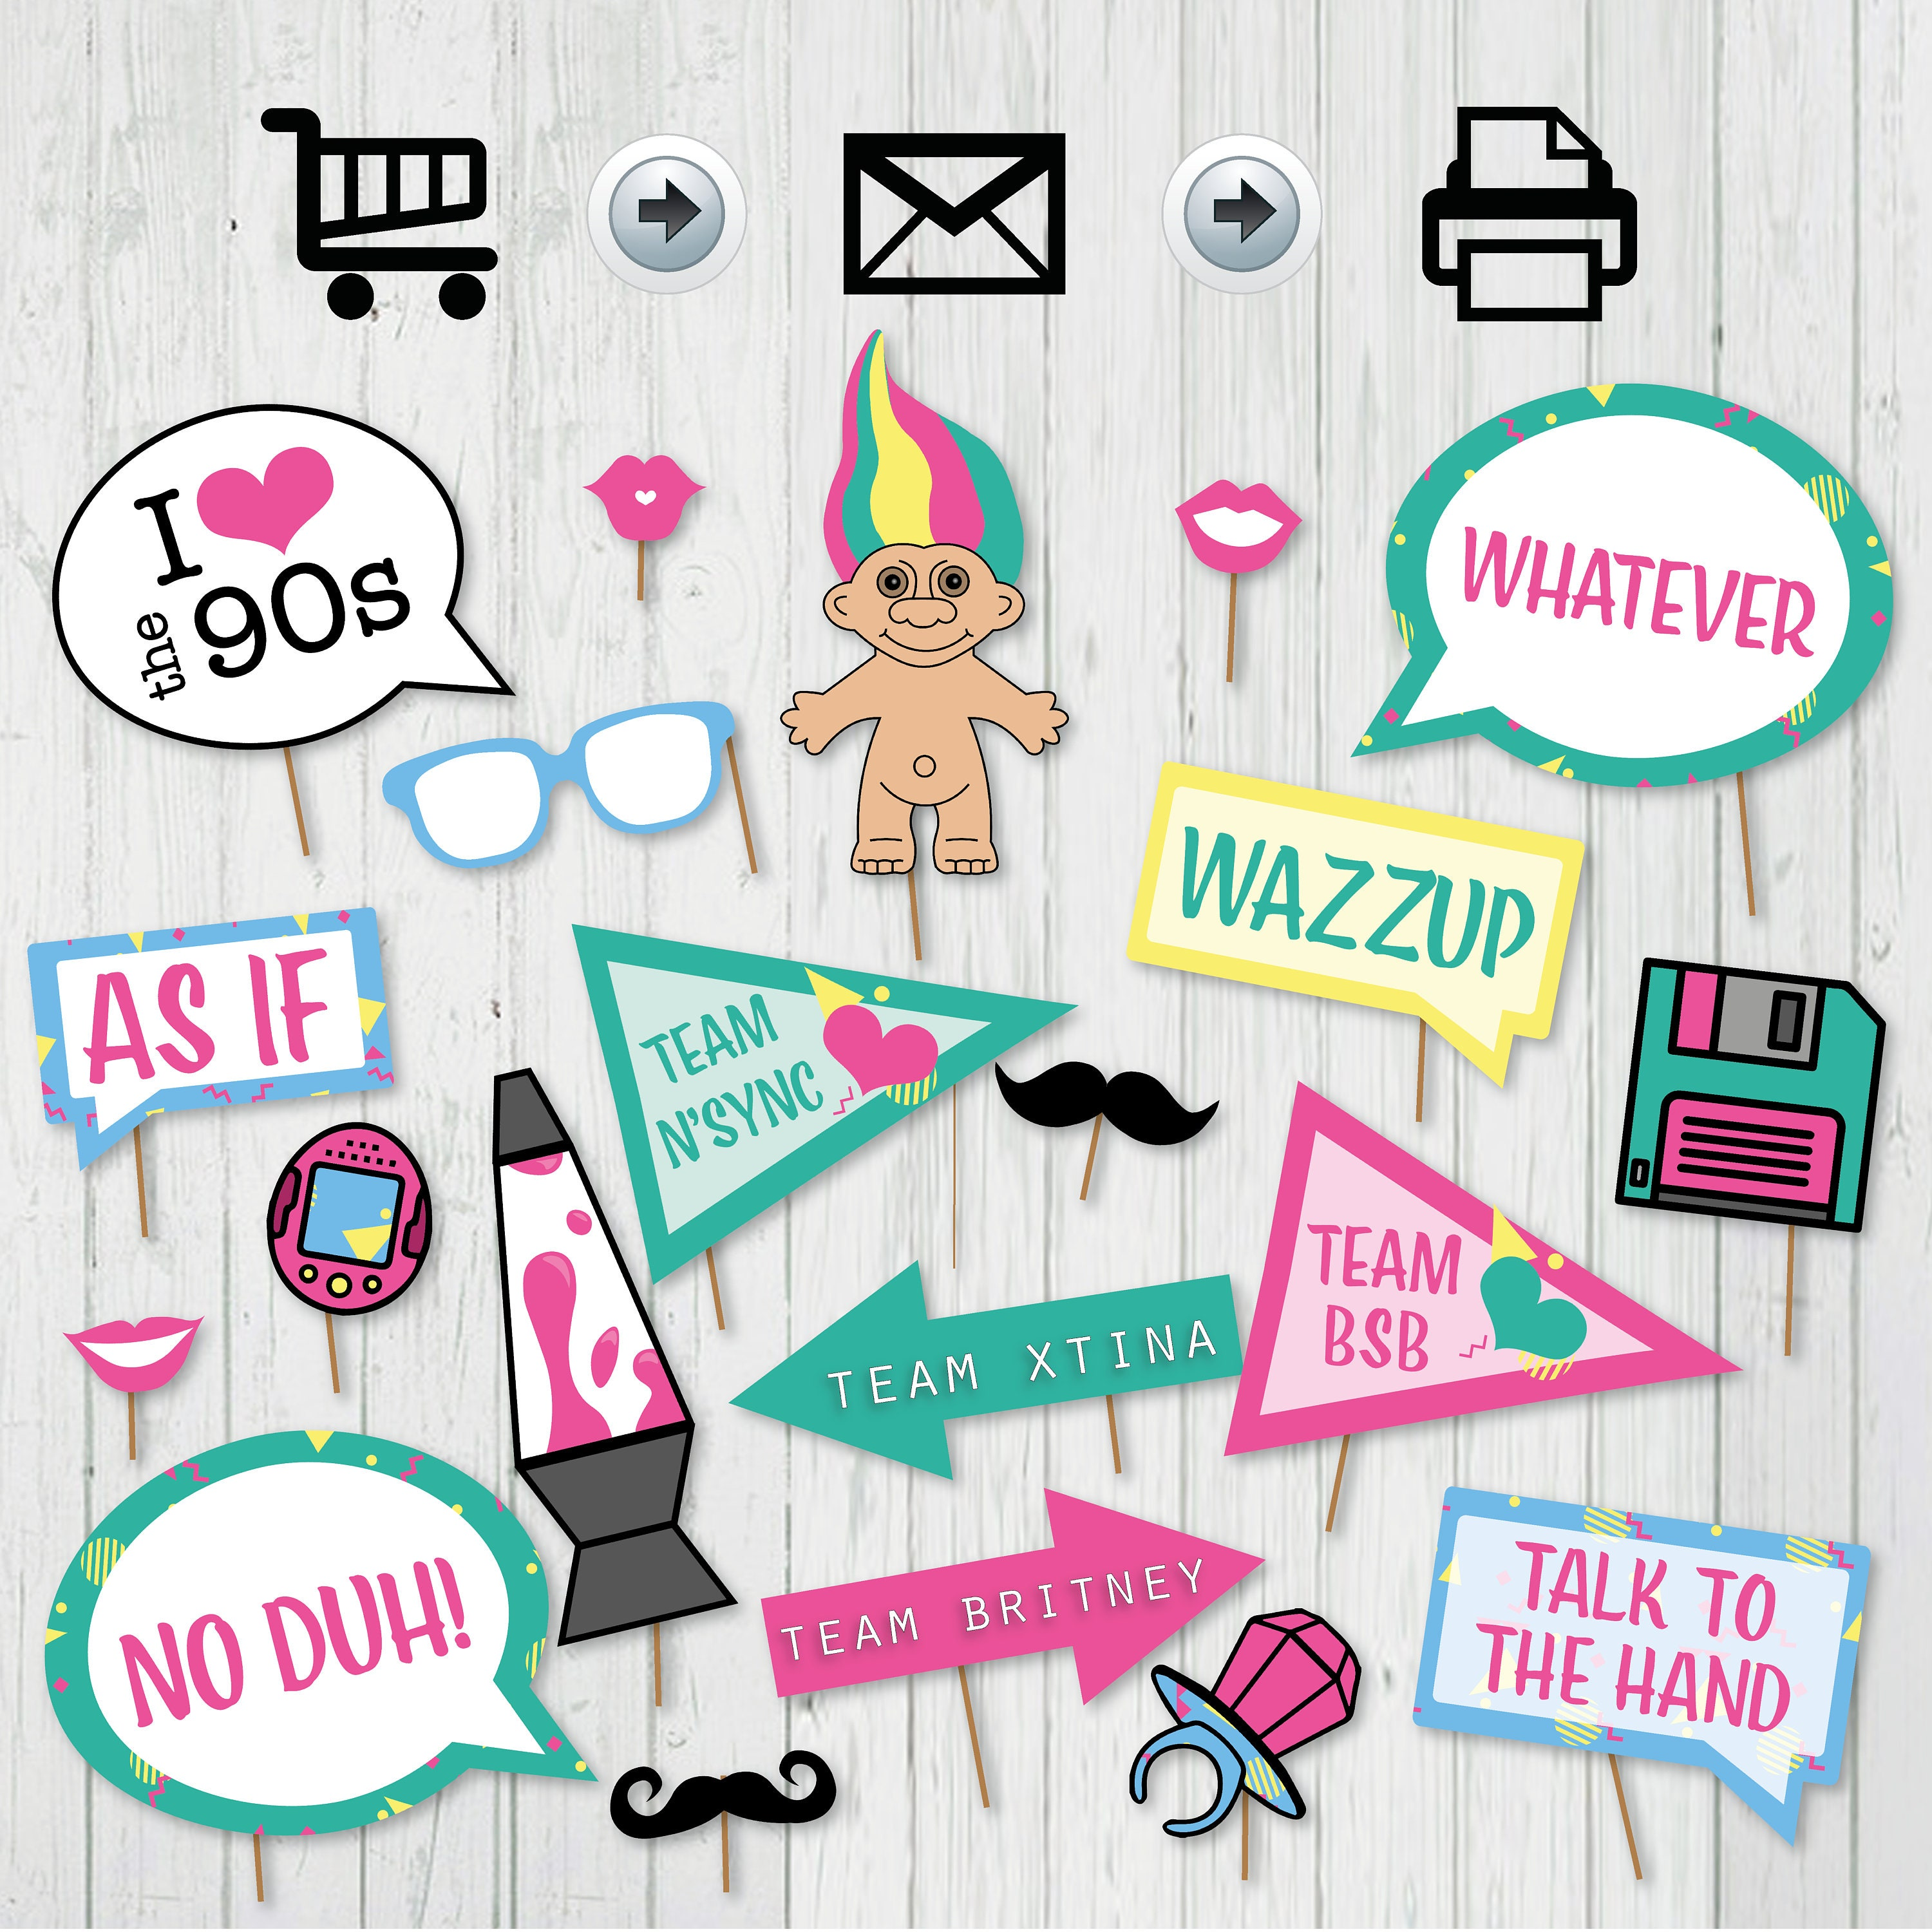 90 S Party Printable Photo Booth Props Signs Instant Etsy